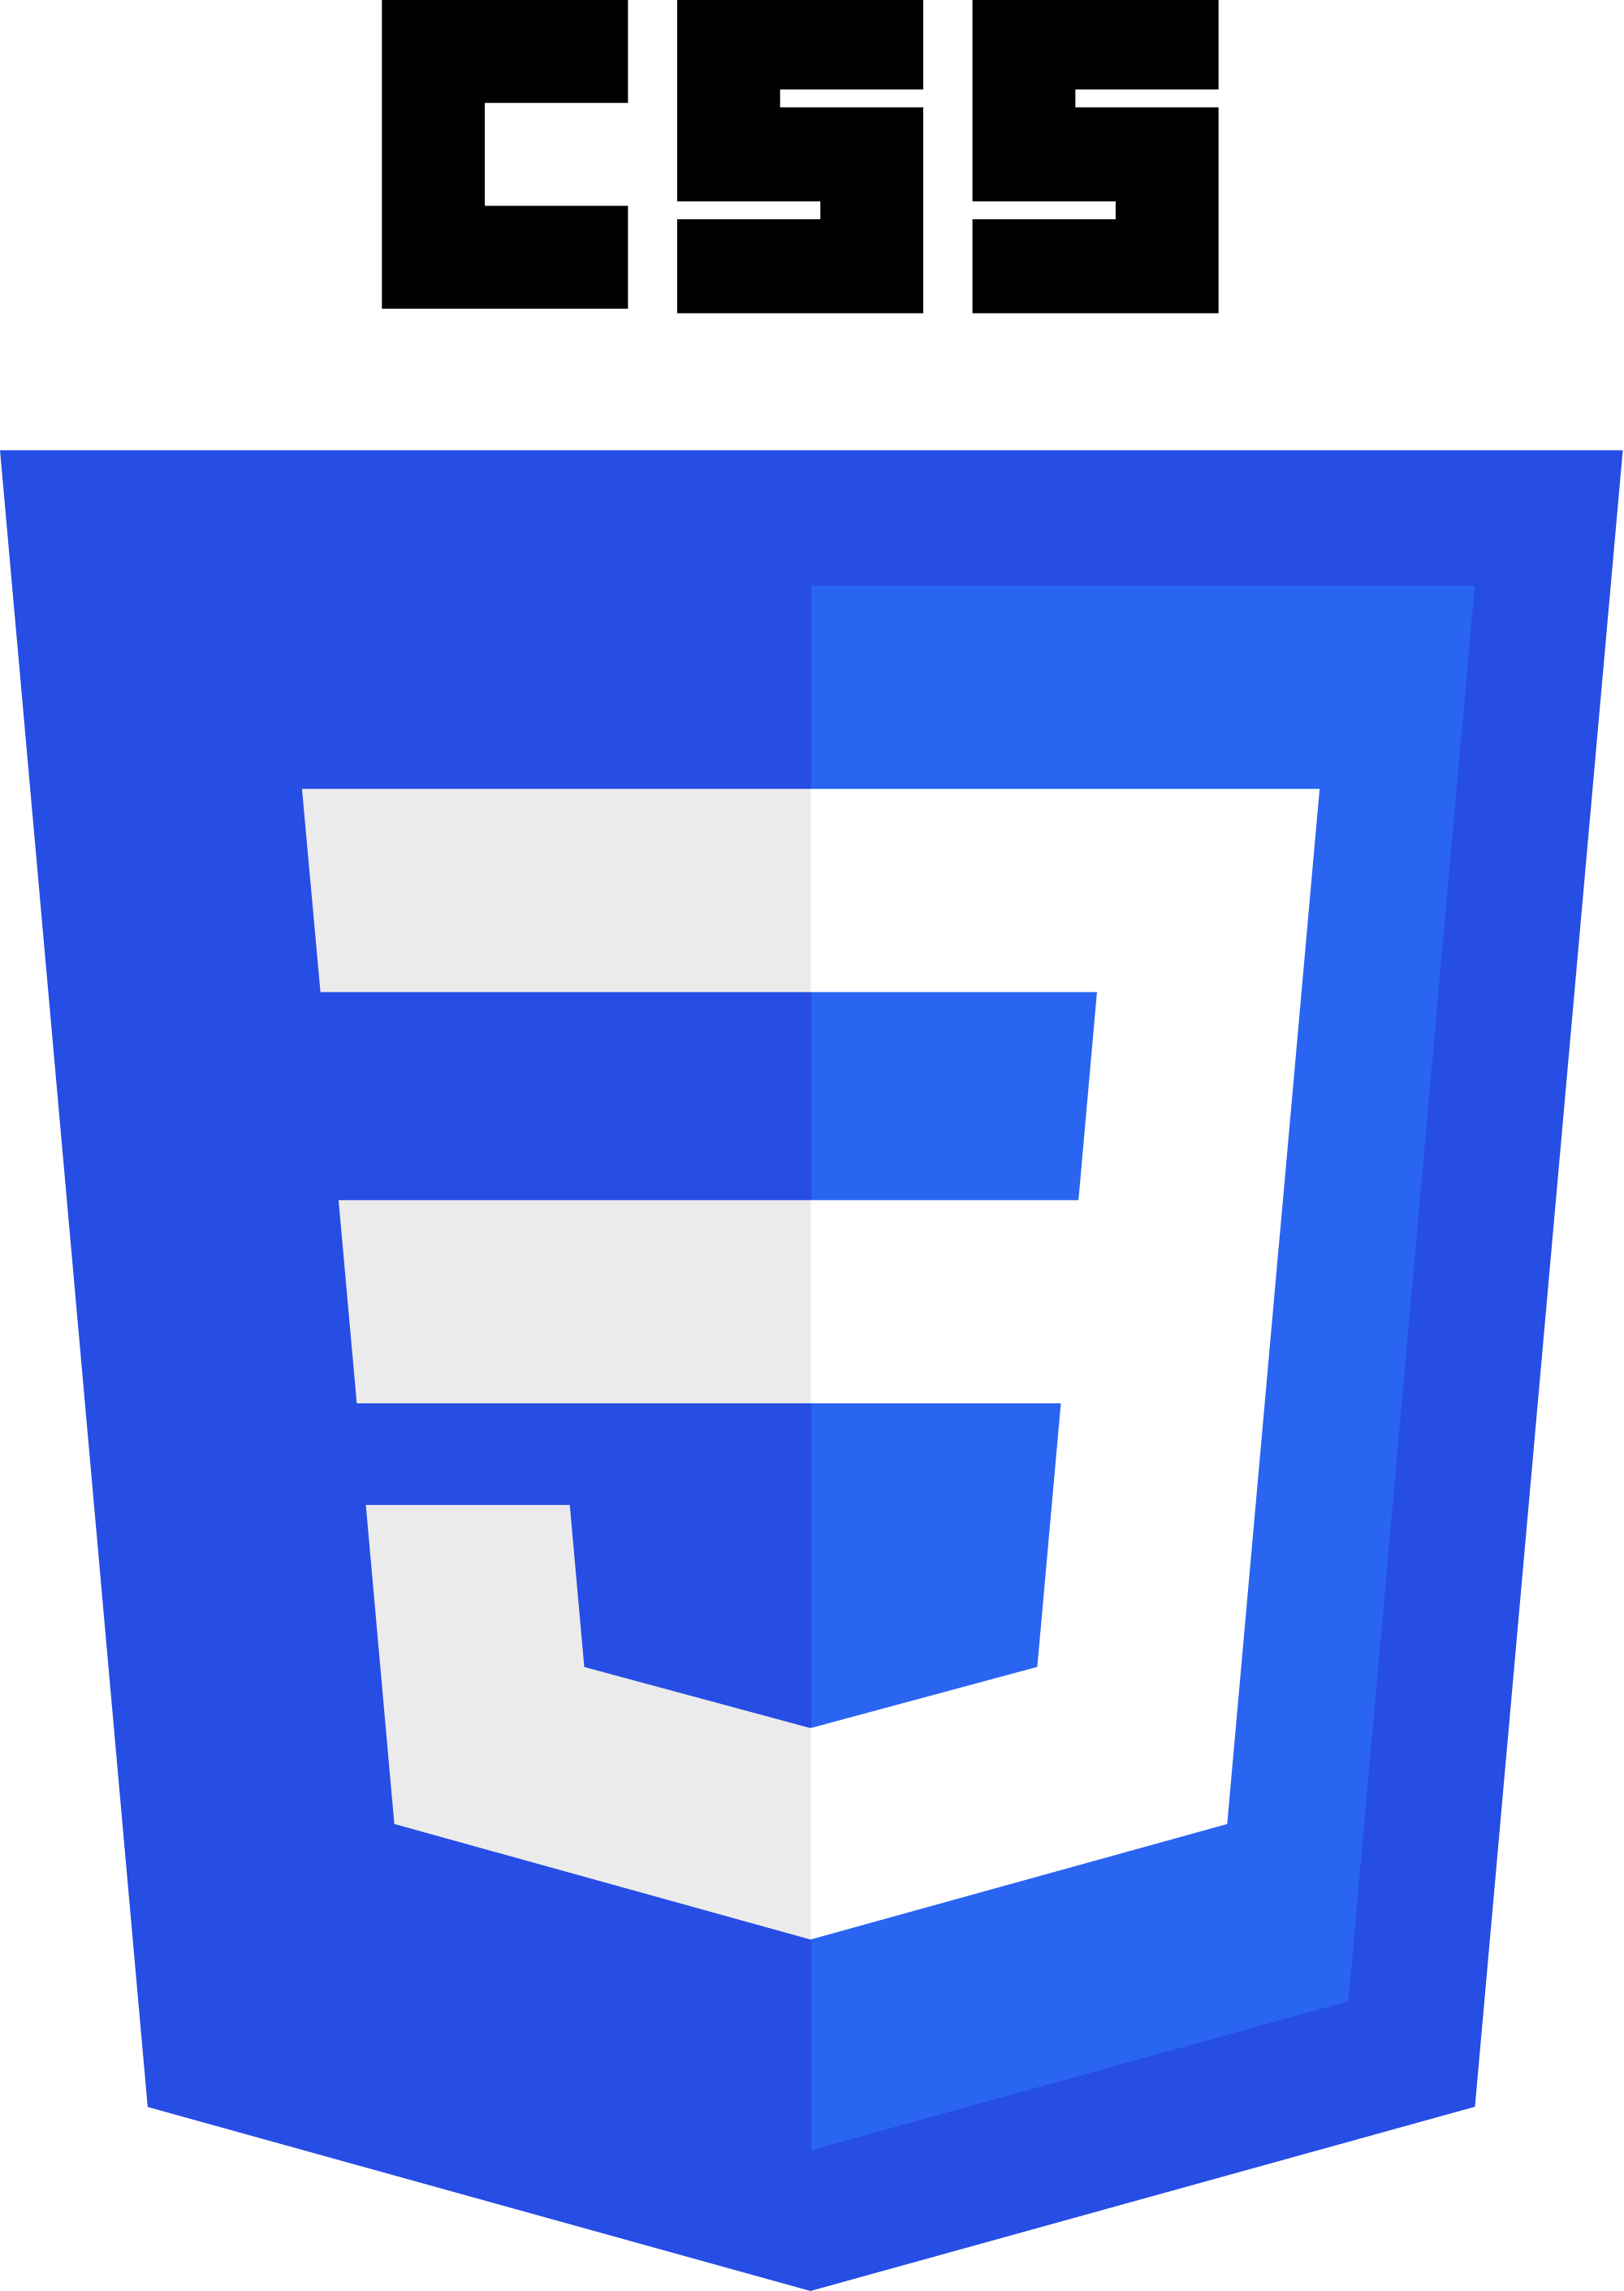 Css 3 logo png. File and wordmark svg